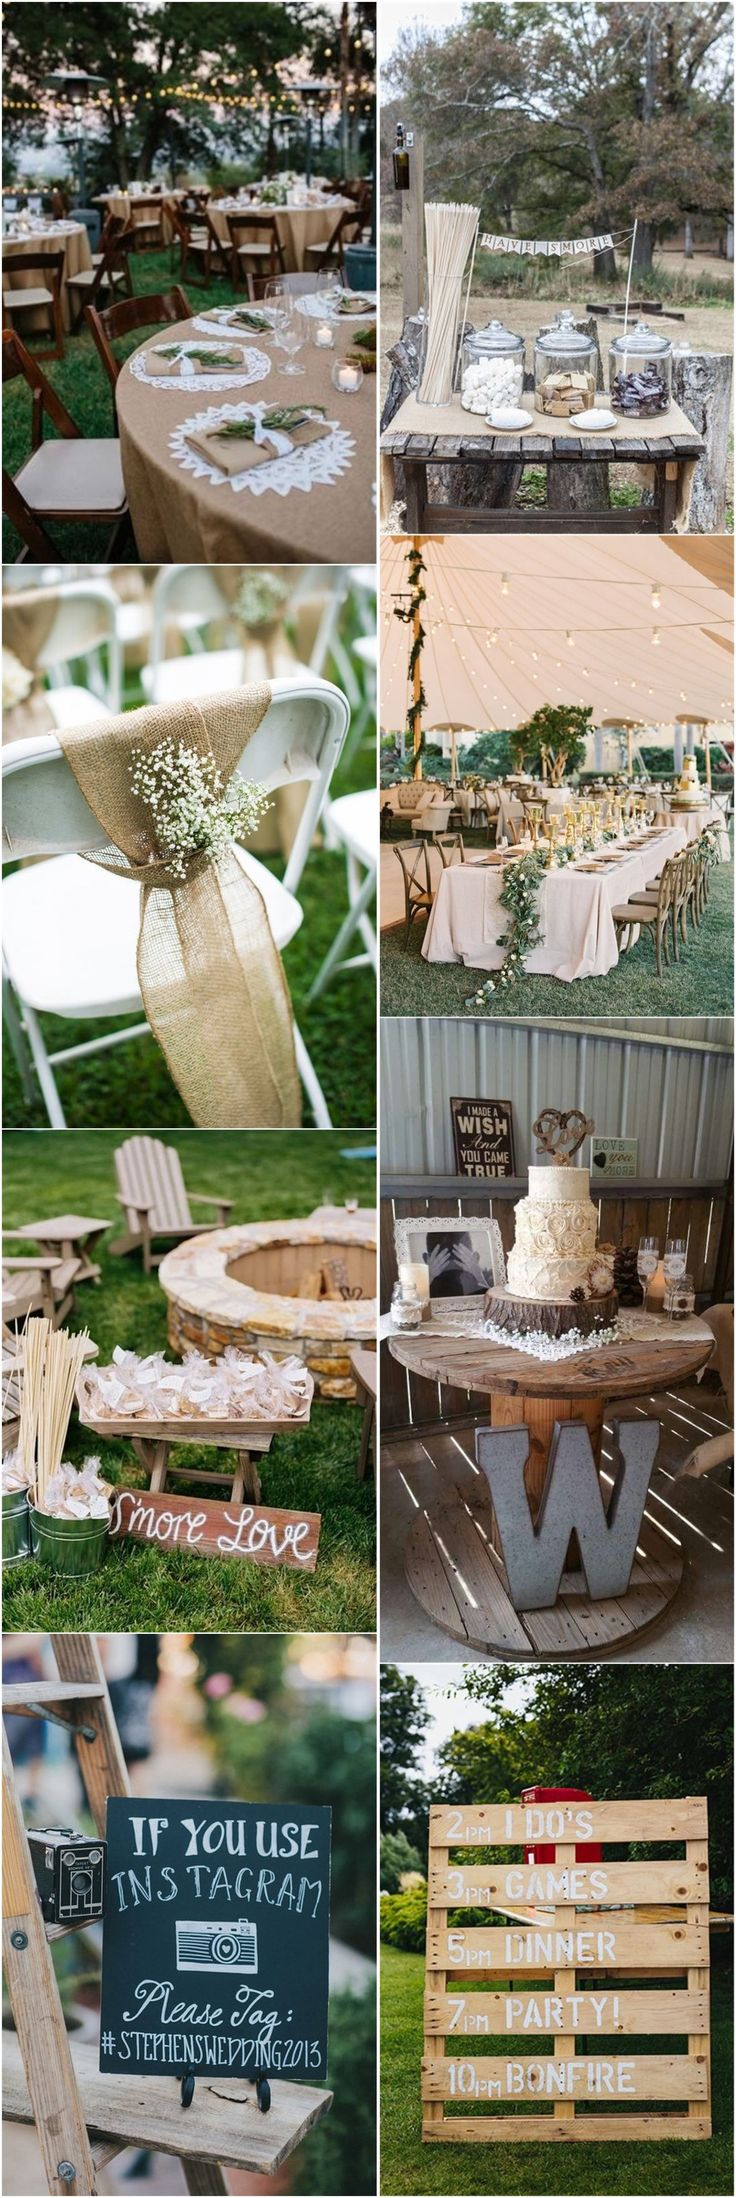 802 best rustic weddings images on pinterest outdoor for Backyard wedding decoration ideas on a budget